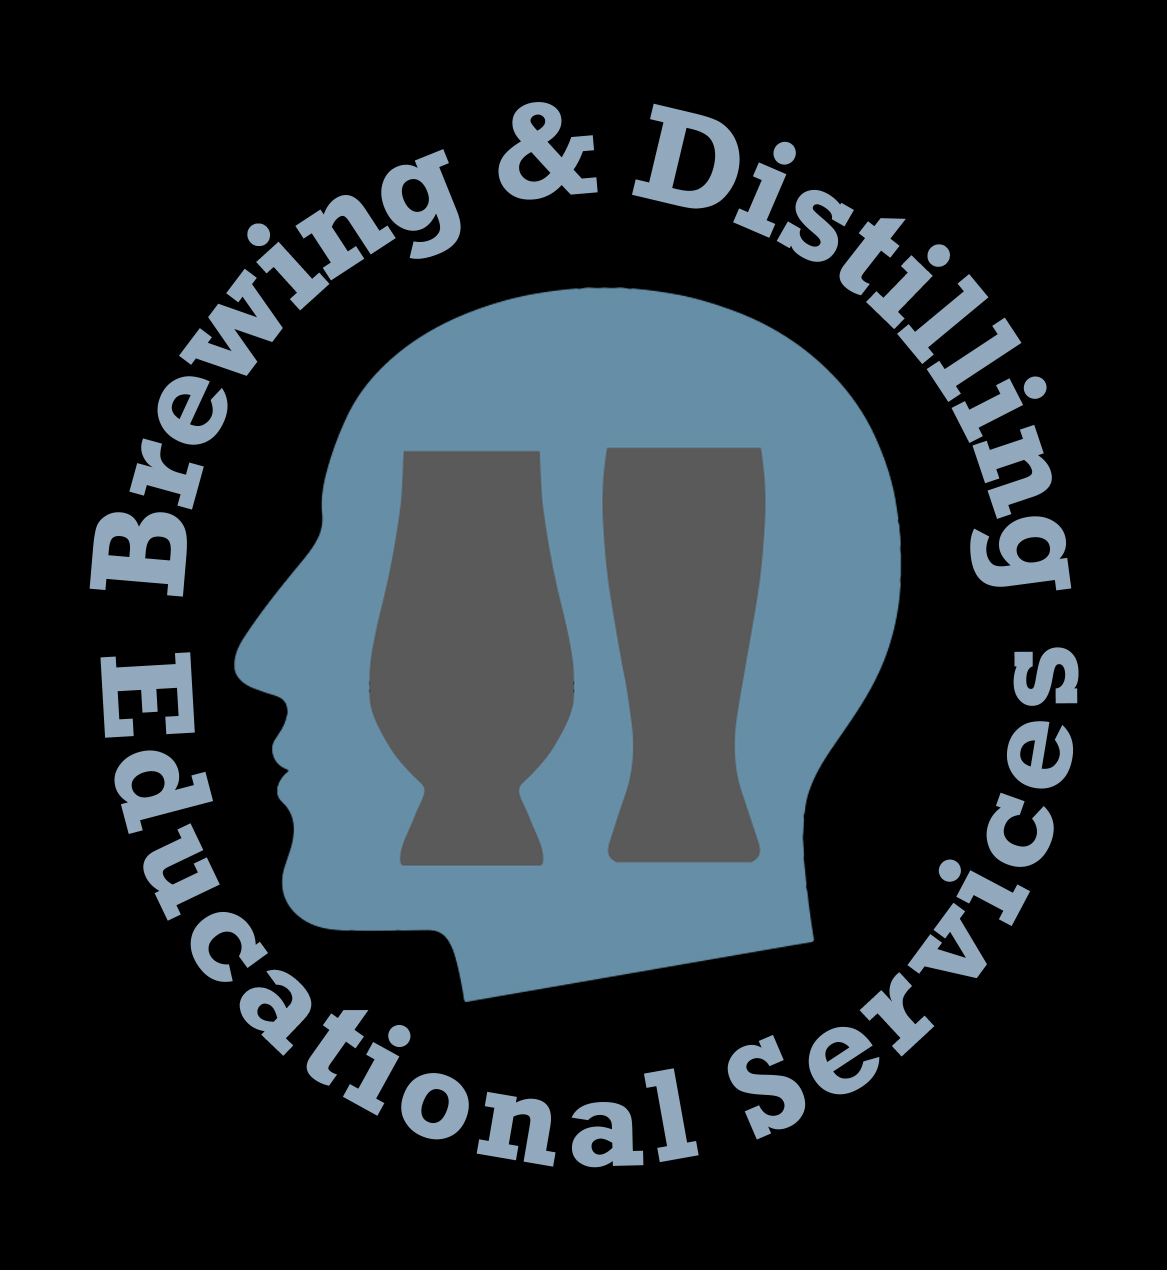 Brewing And Distilling Analytical Services